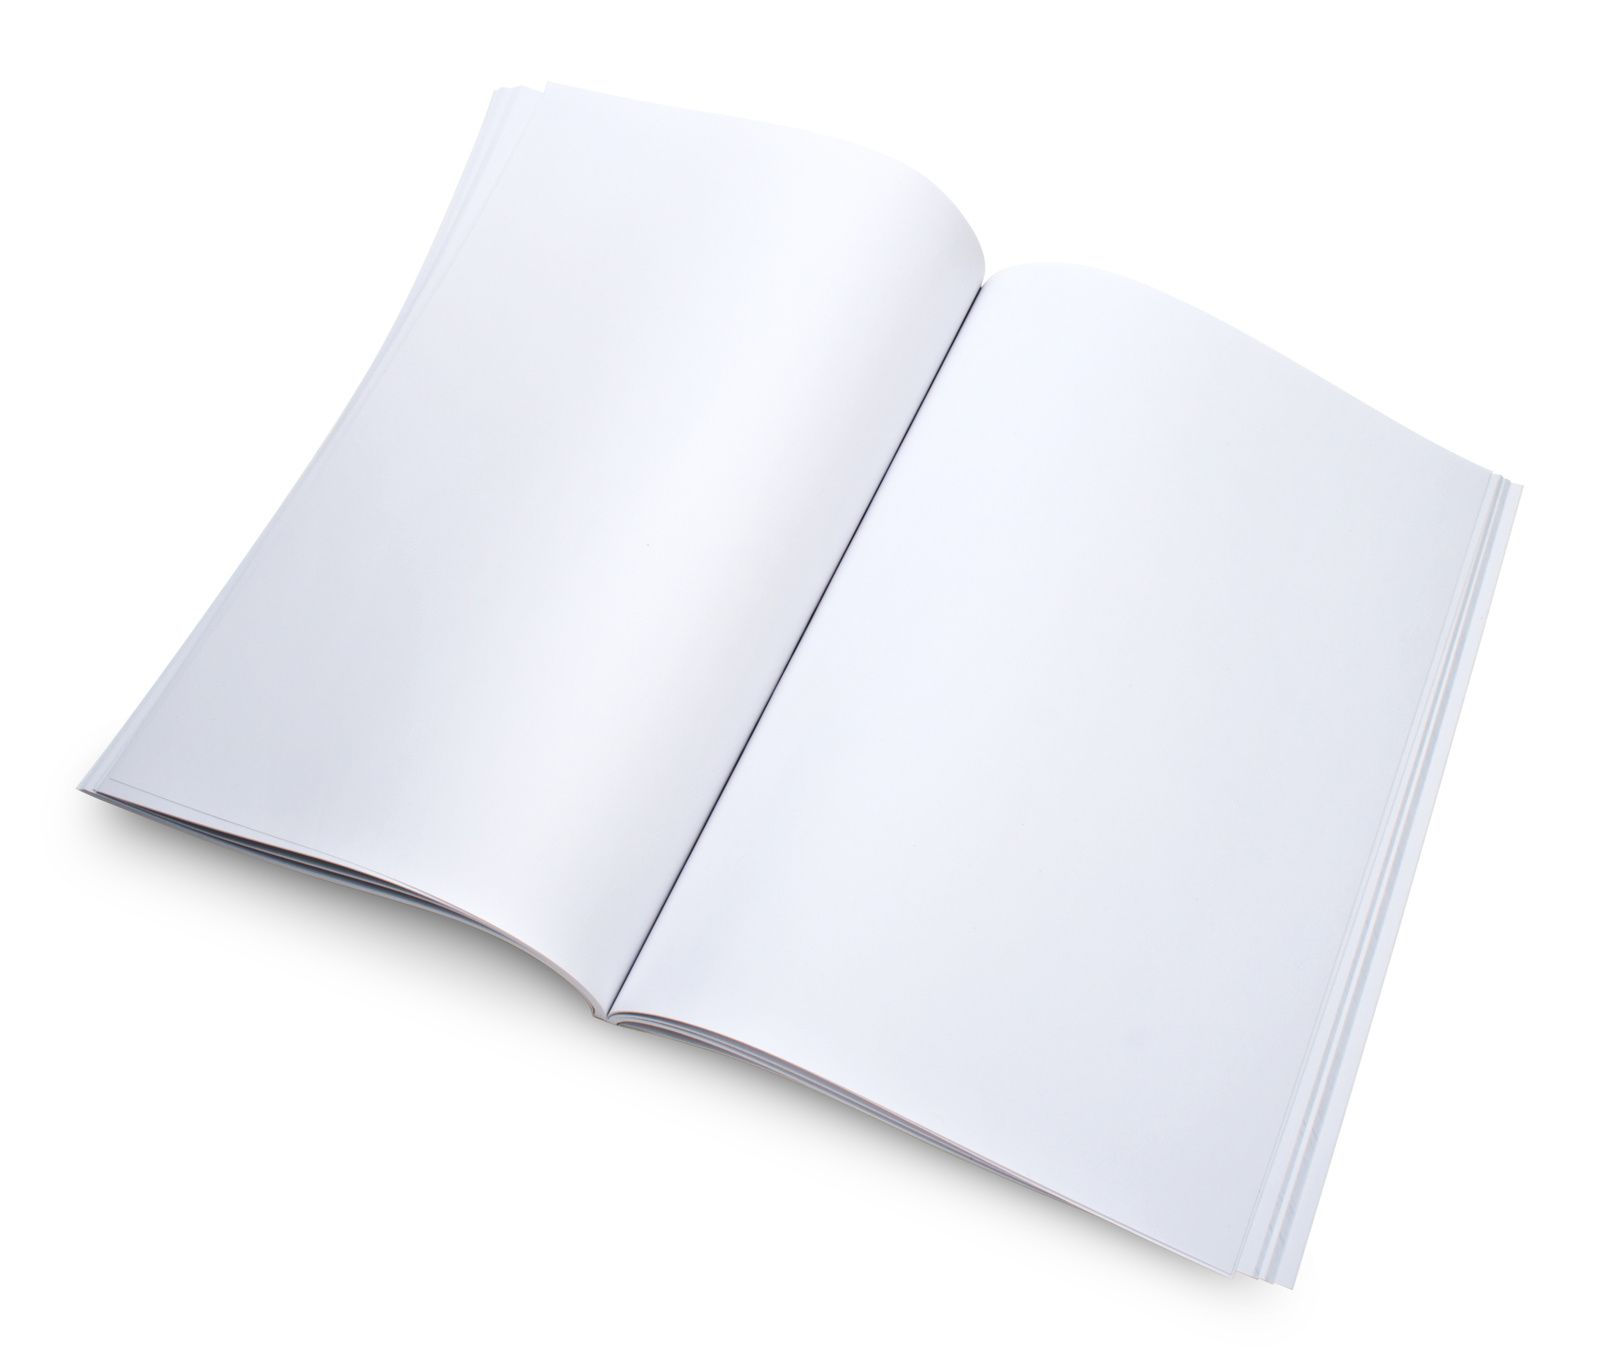 Pages blanches... ©Shutterstock - www.shutterstock.com/fr/